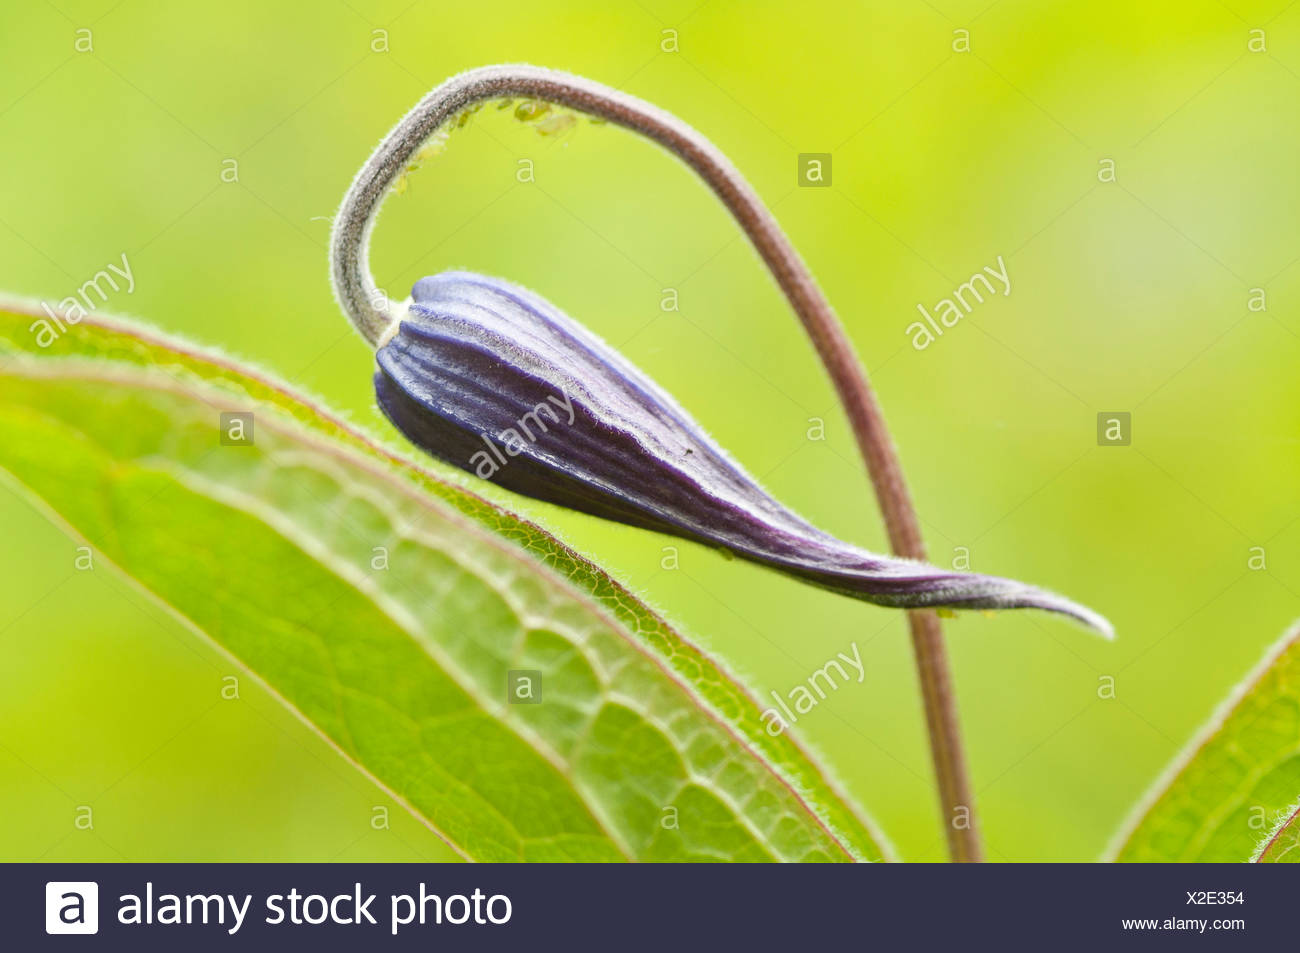 Clematis, Clematis Integrifolia 'Henderson', Blue, Green. - Stock Image